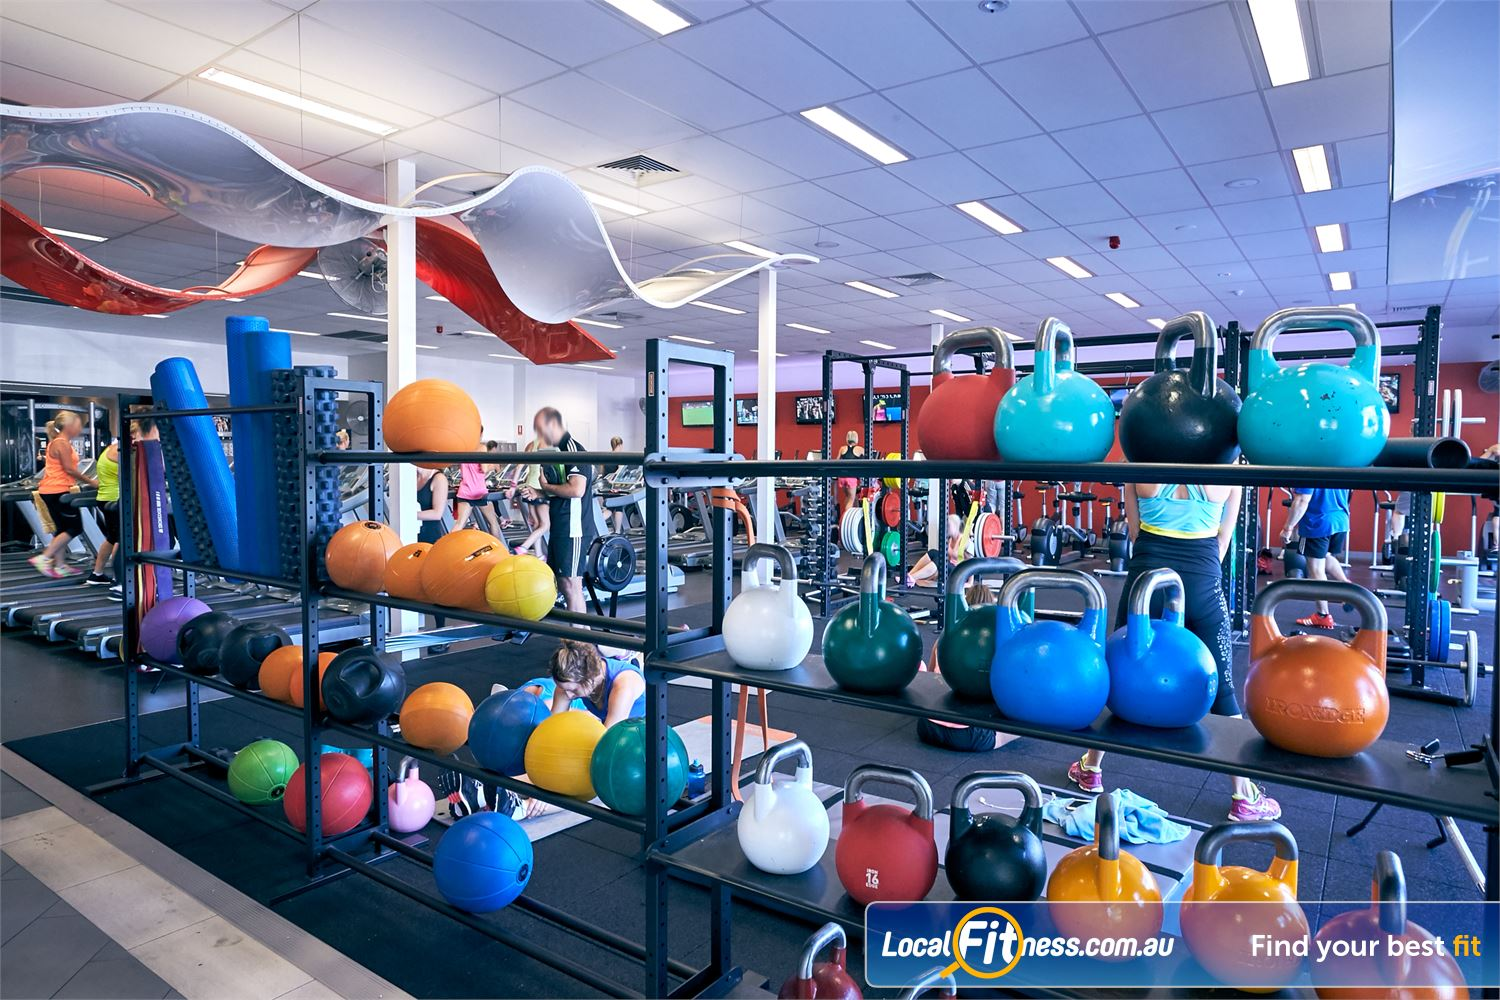 Goodlife Health Clubs Cross Roads Near Unley Park Our functional training area inc. kettlebells, medicine balls and more.